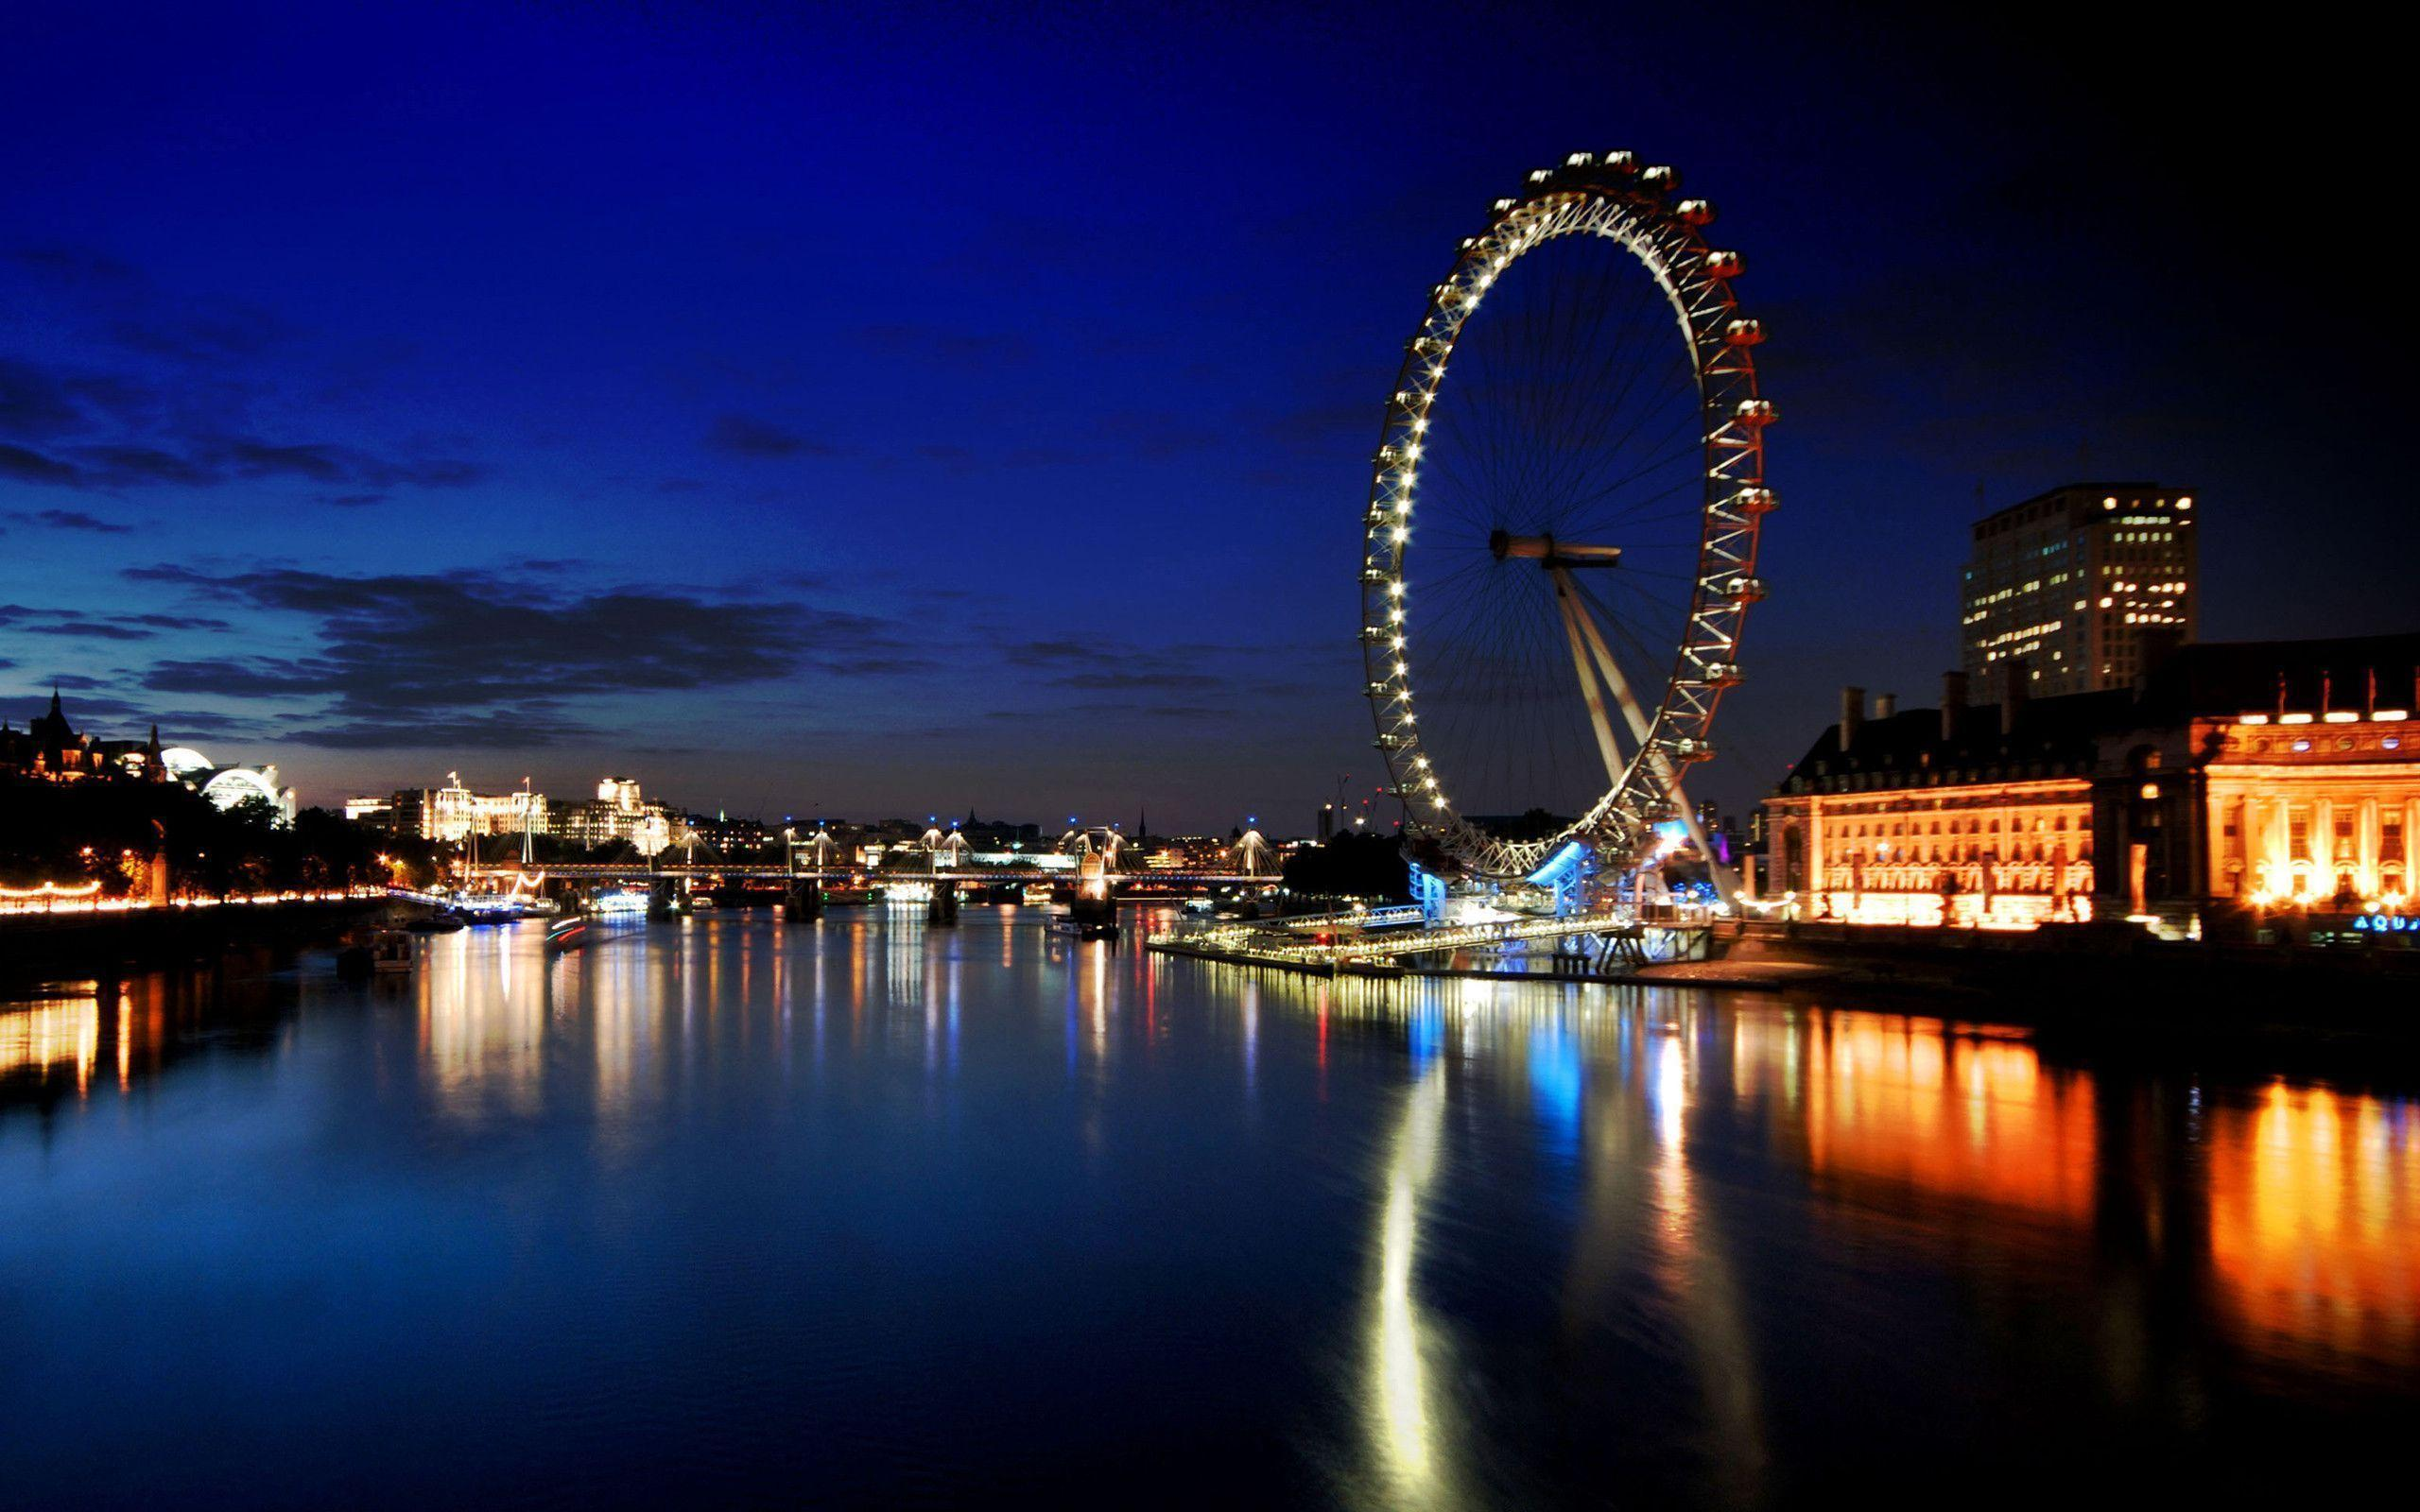 London Desktop Wallpaper Free 15653 Images | wallgraf.